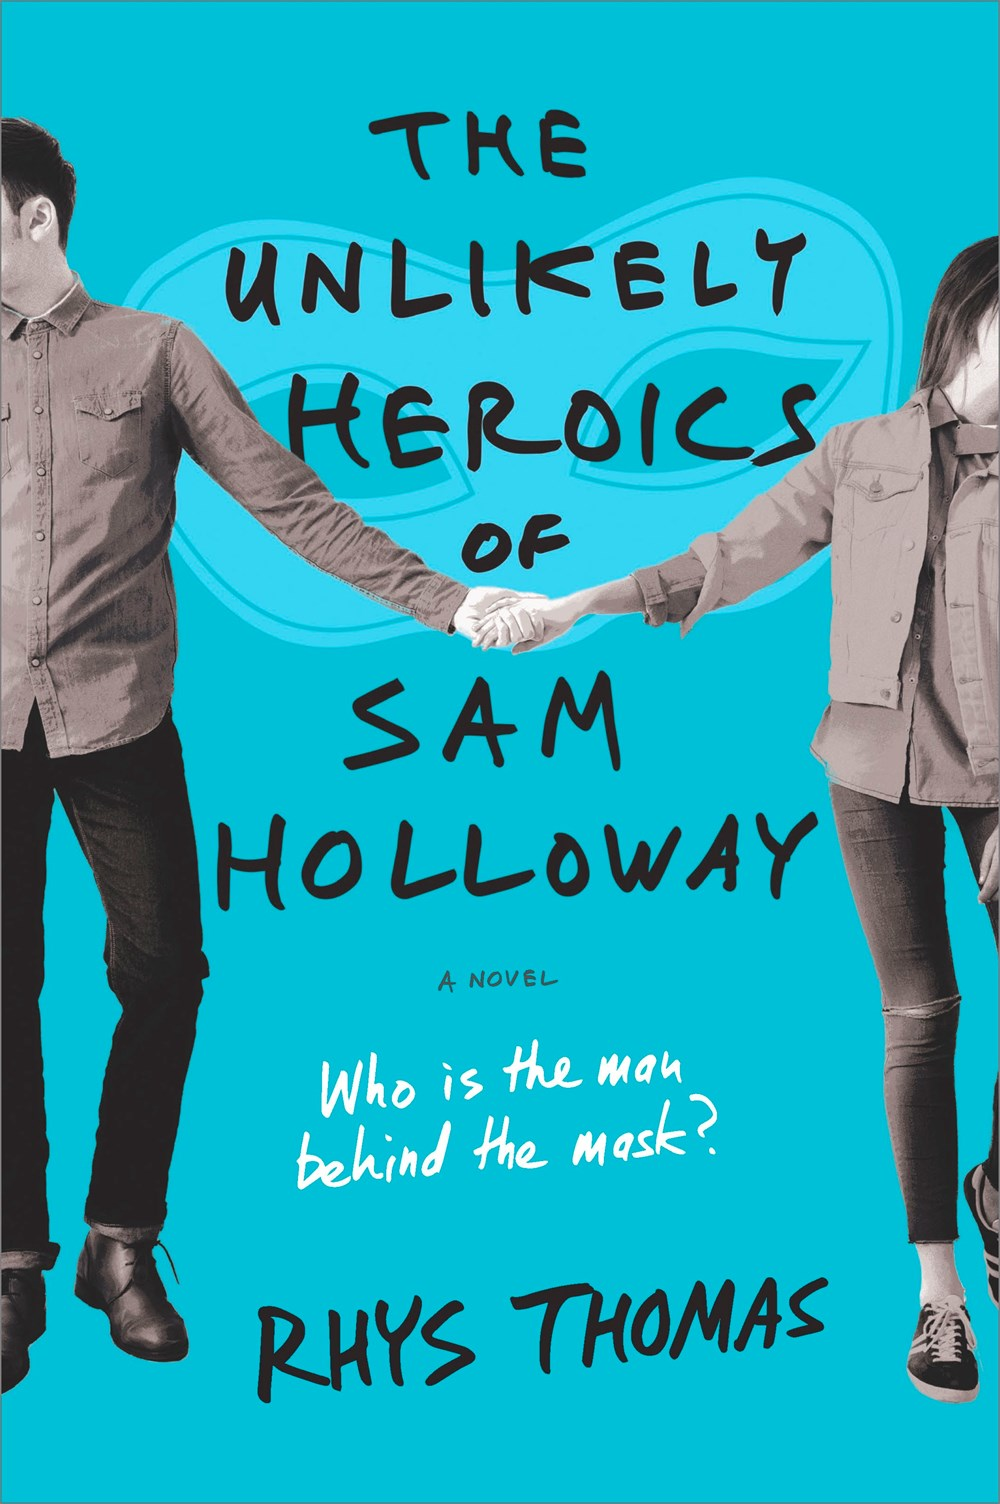 The Unlikely Heroics of Sam Holloway cover